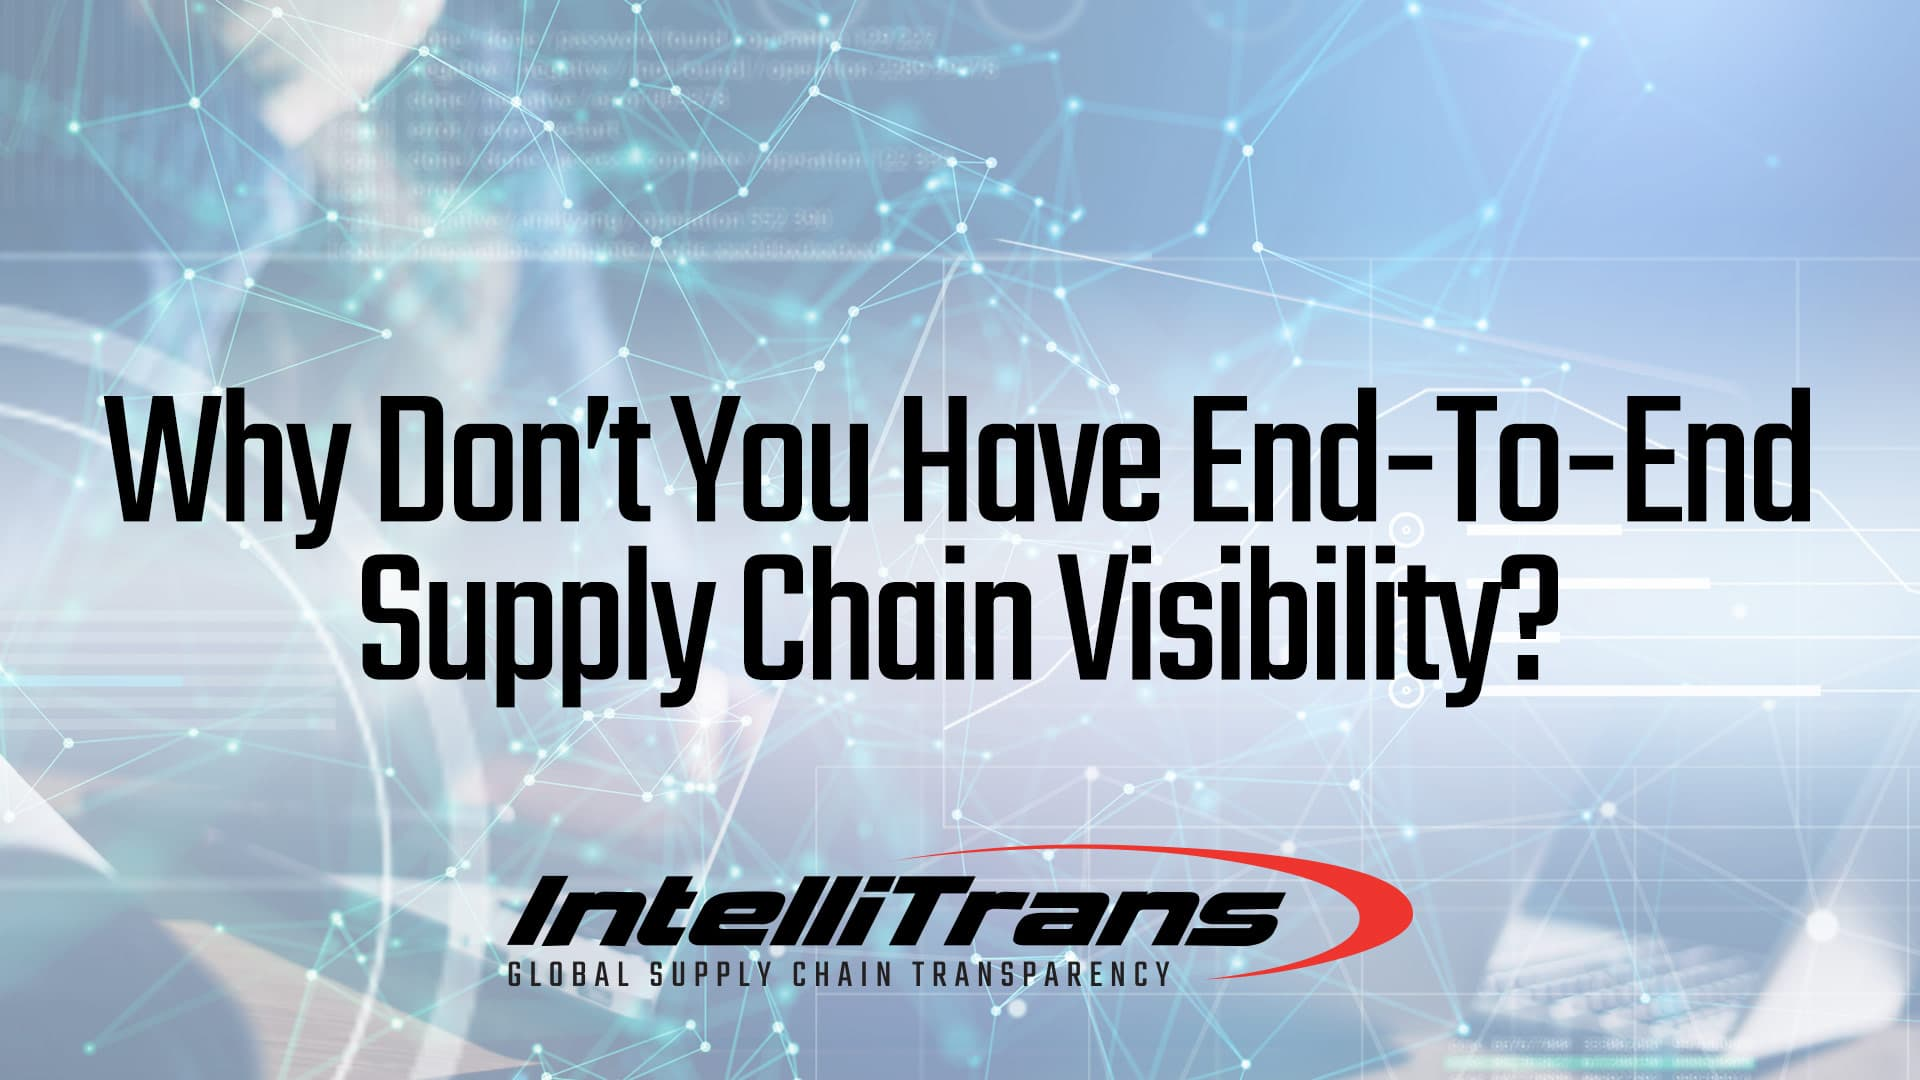 Benefits of End-to-End Supply Chain Visibility